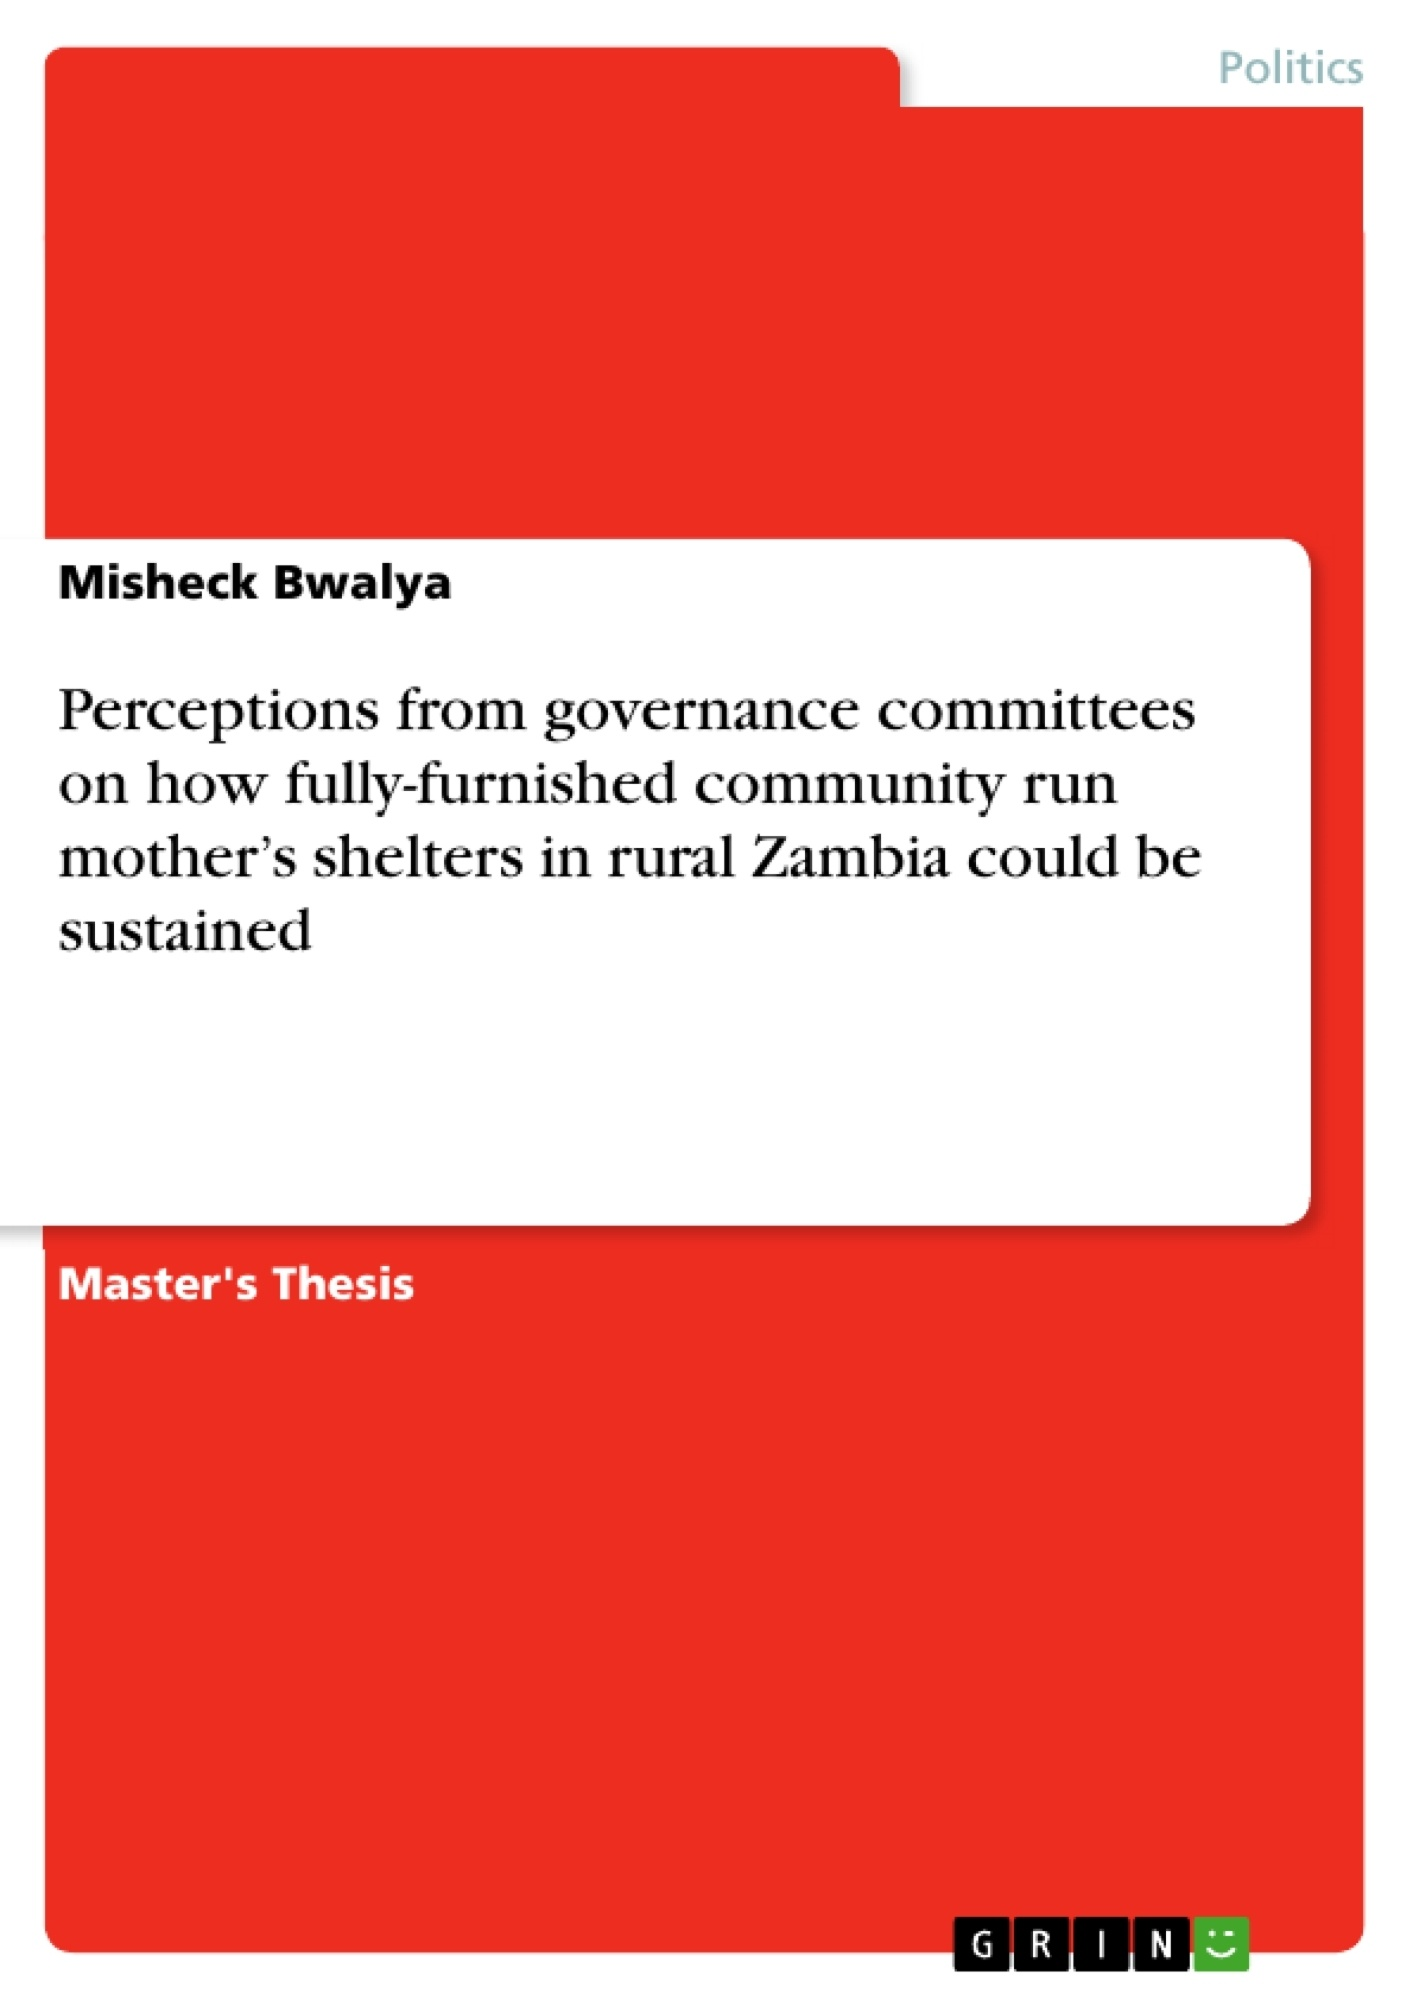 Title: Perceptions from governance committees on how fully-furnished community run mother's shelters in rural Zambia could be sustained